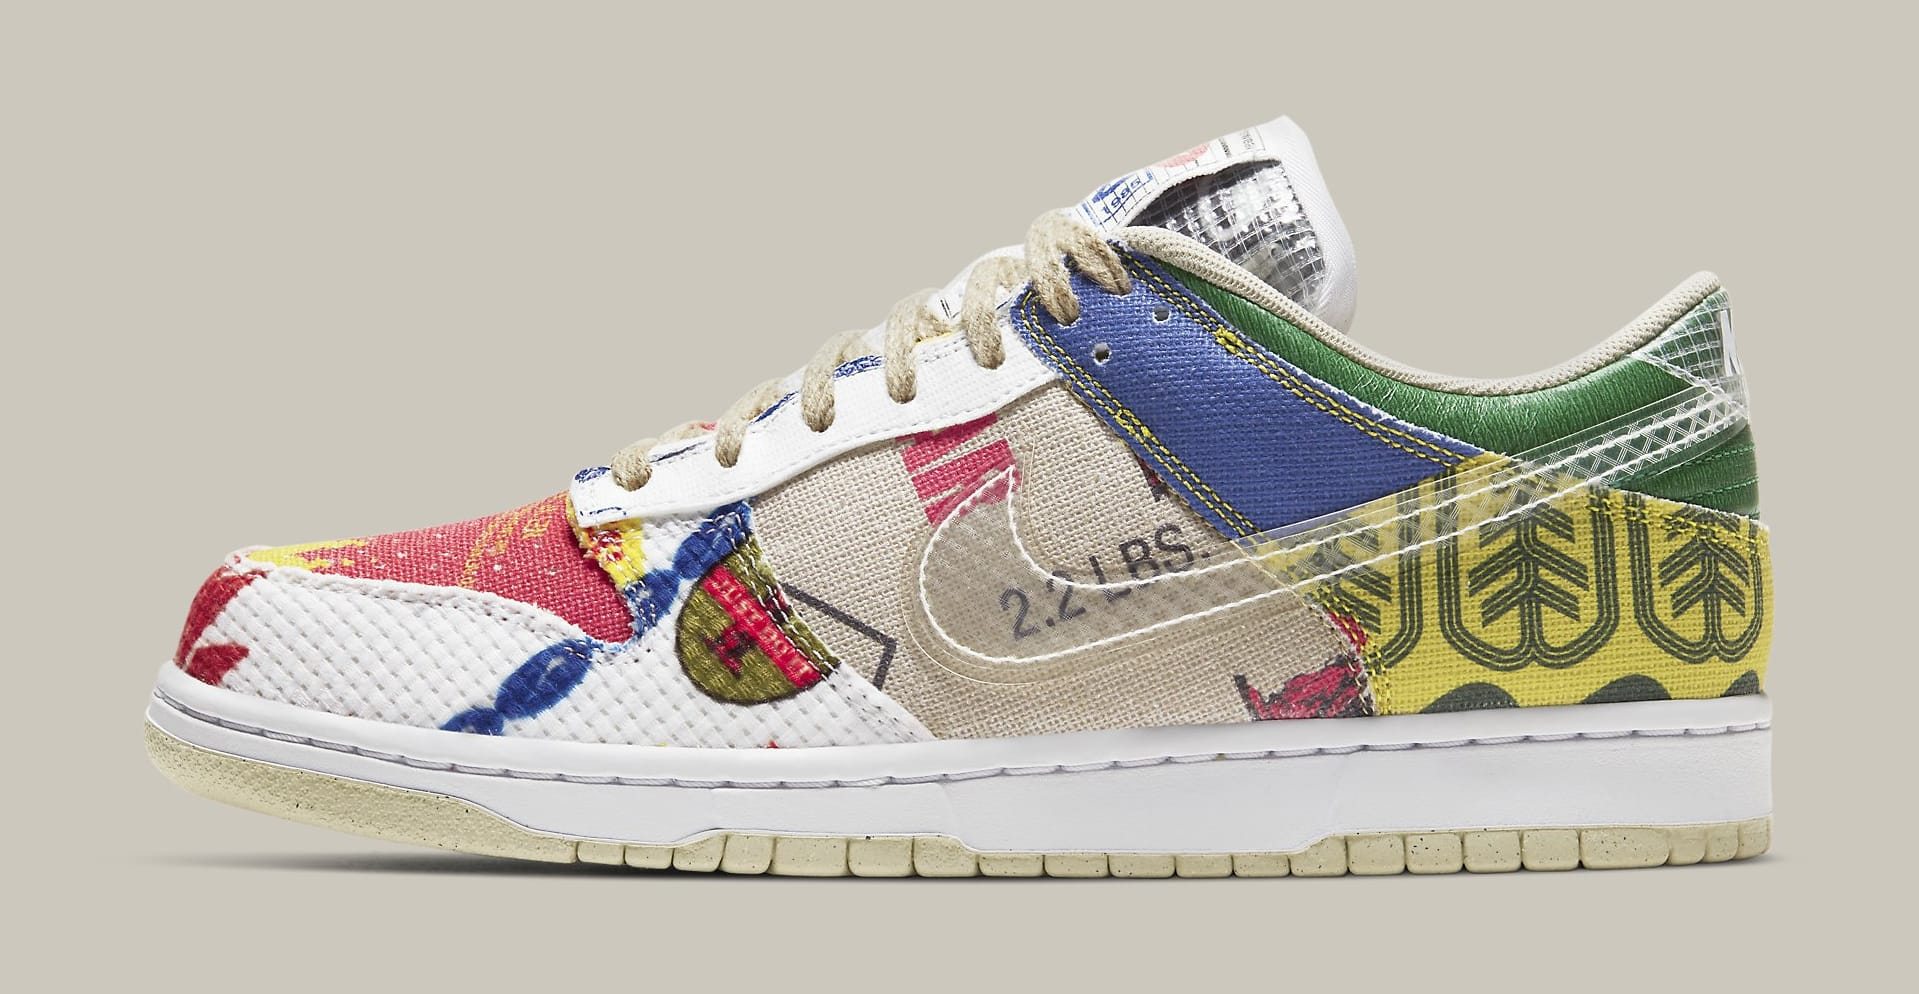 Nike Dunk Low 'City Market' DA6125-900 Lateral